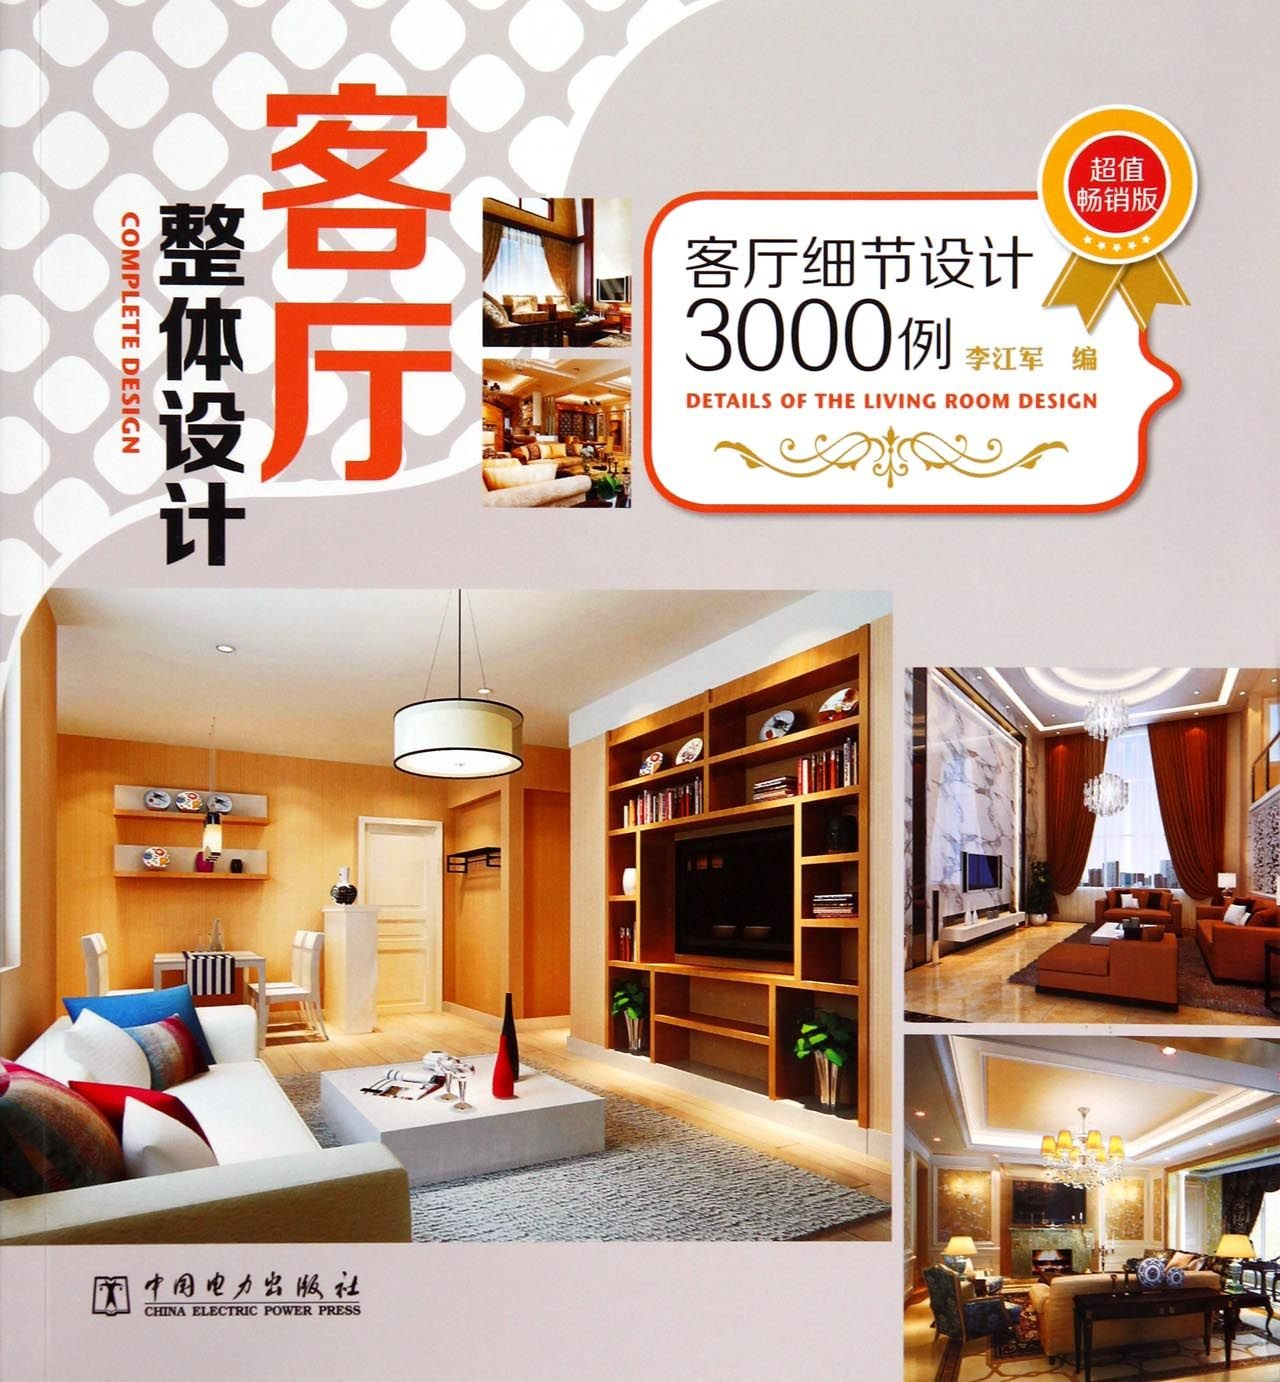 Living room detail design 3000 cases: Living the overall design(Chinese Edition) ebook